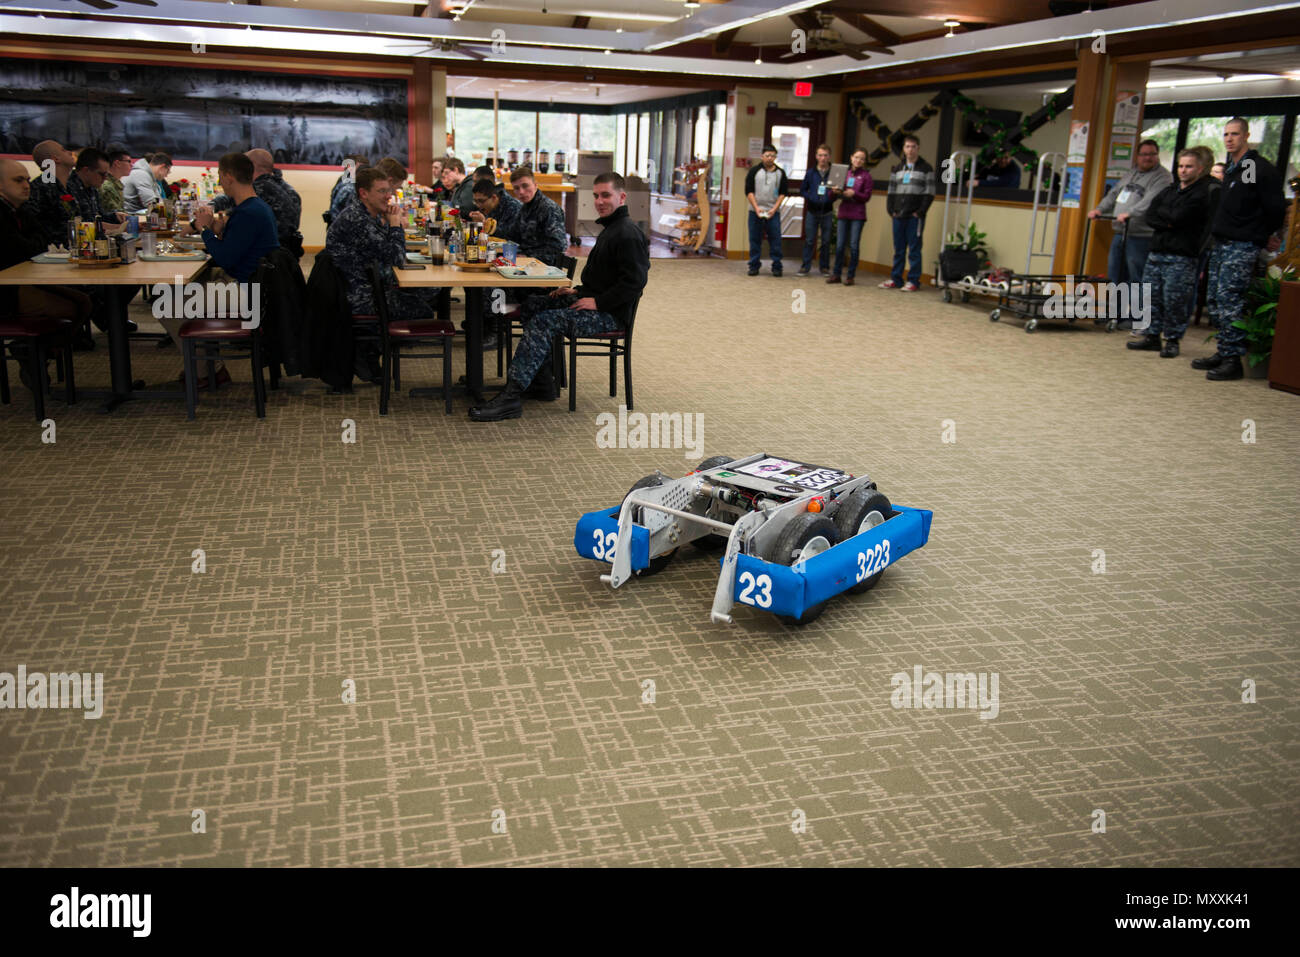 BANGOR, Wash. (Dec. 8, 2016) - Students from the Central Kitsap and Issaquah High School For Inspiration & Recognition of Science & Technology (FIRST) Robotics Teams showcased their competition robots at the Naval Base Kitsap-Bangor Trident Inn Galley during lunch. The schools came to the base to raise program visibility and encourage mentorship and support for the local FIRST organization. (U.S. Navy photo by Petty Officer 1st Class Amanda R. Gray/Released) - Stock Image